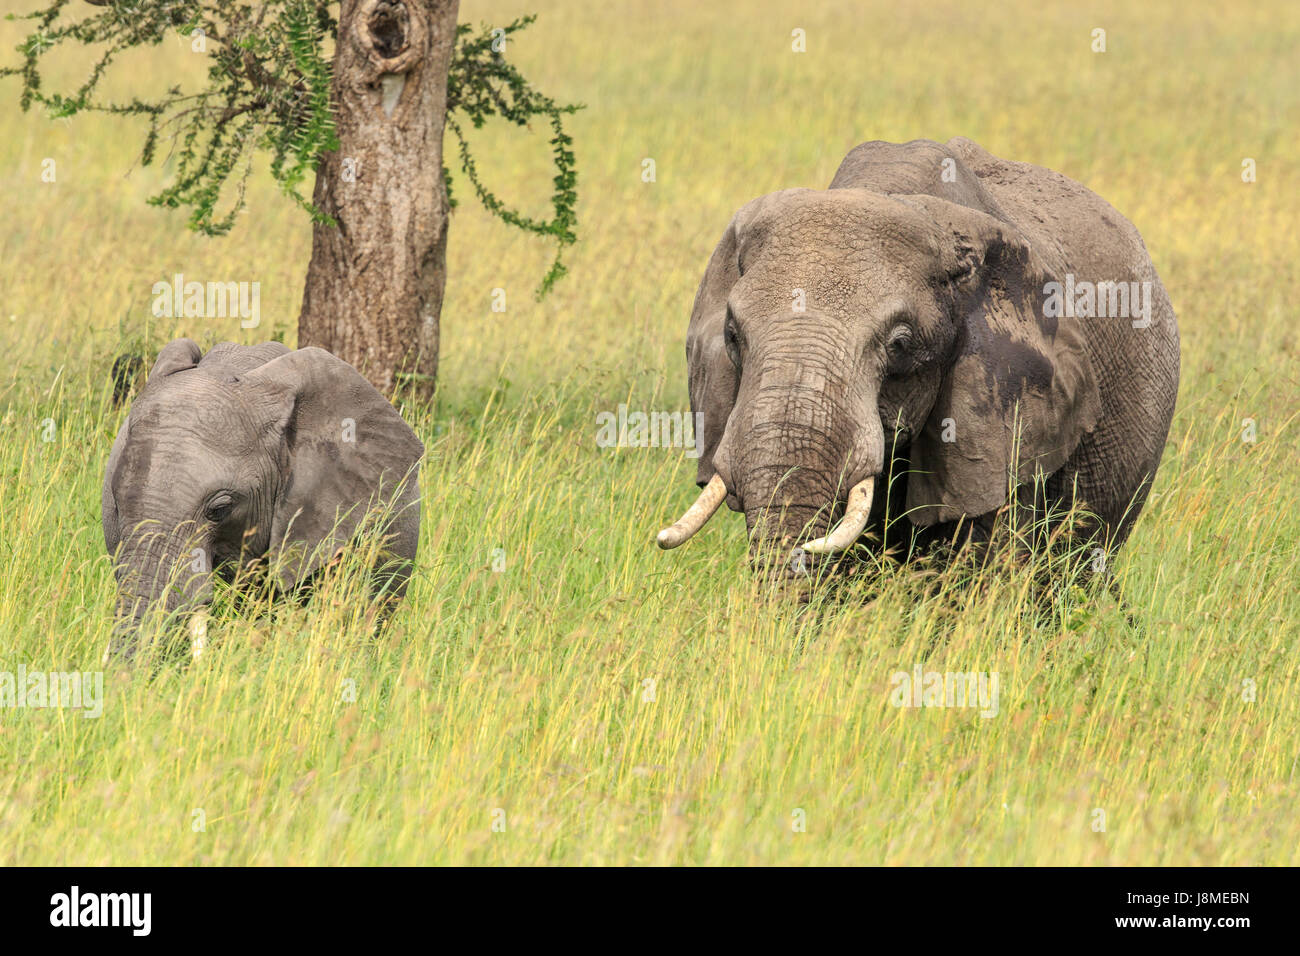 An African Elephant mother with a calf grazing - Stock Image